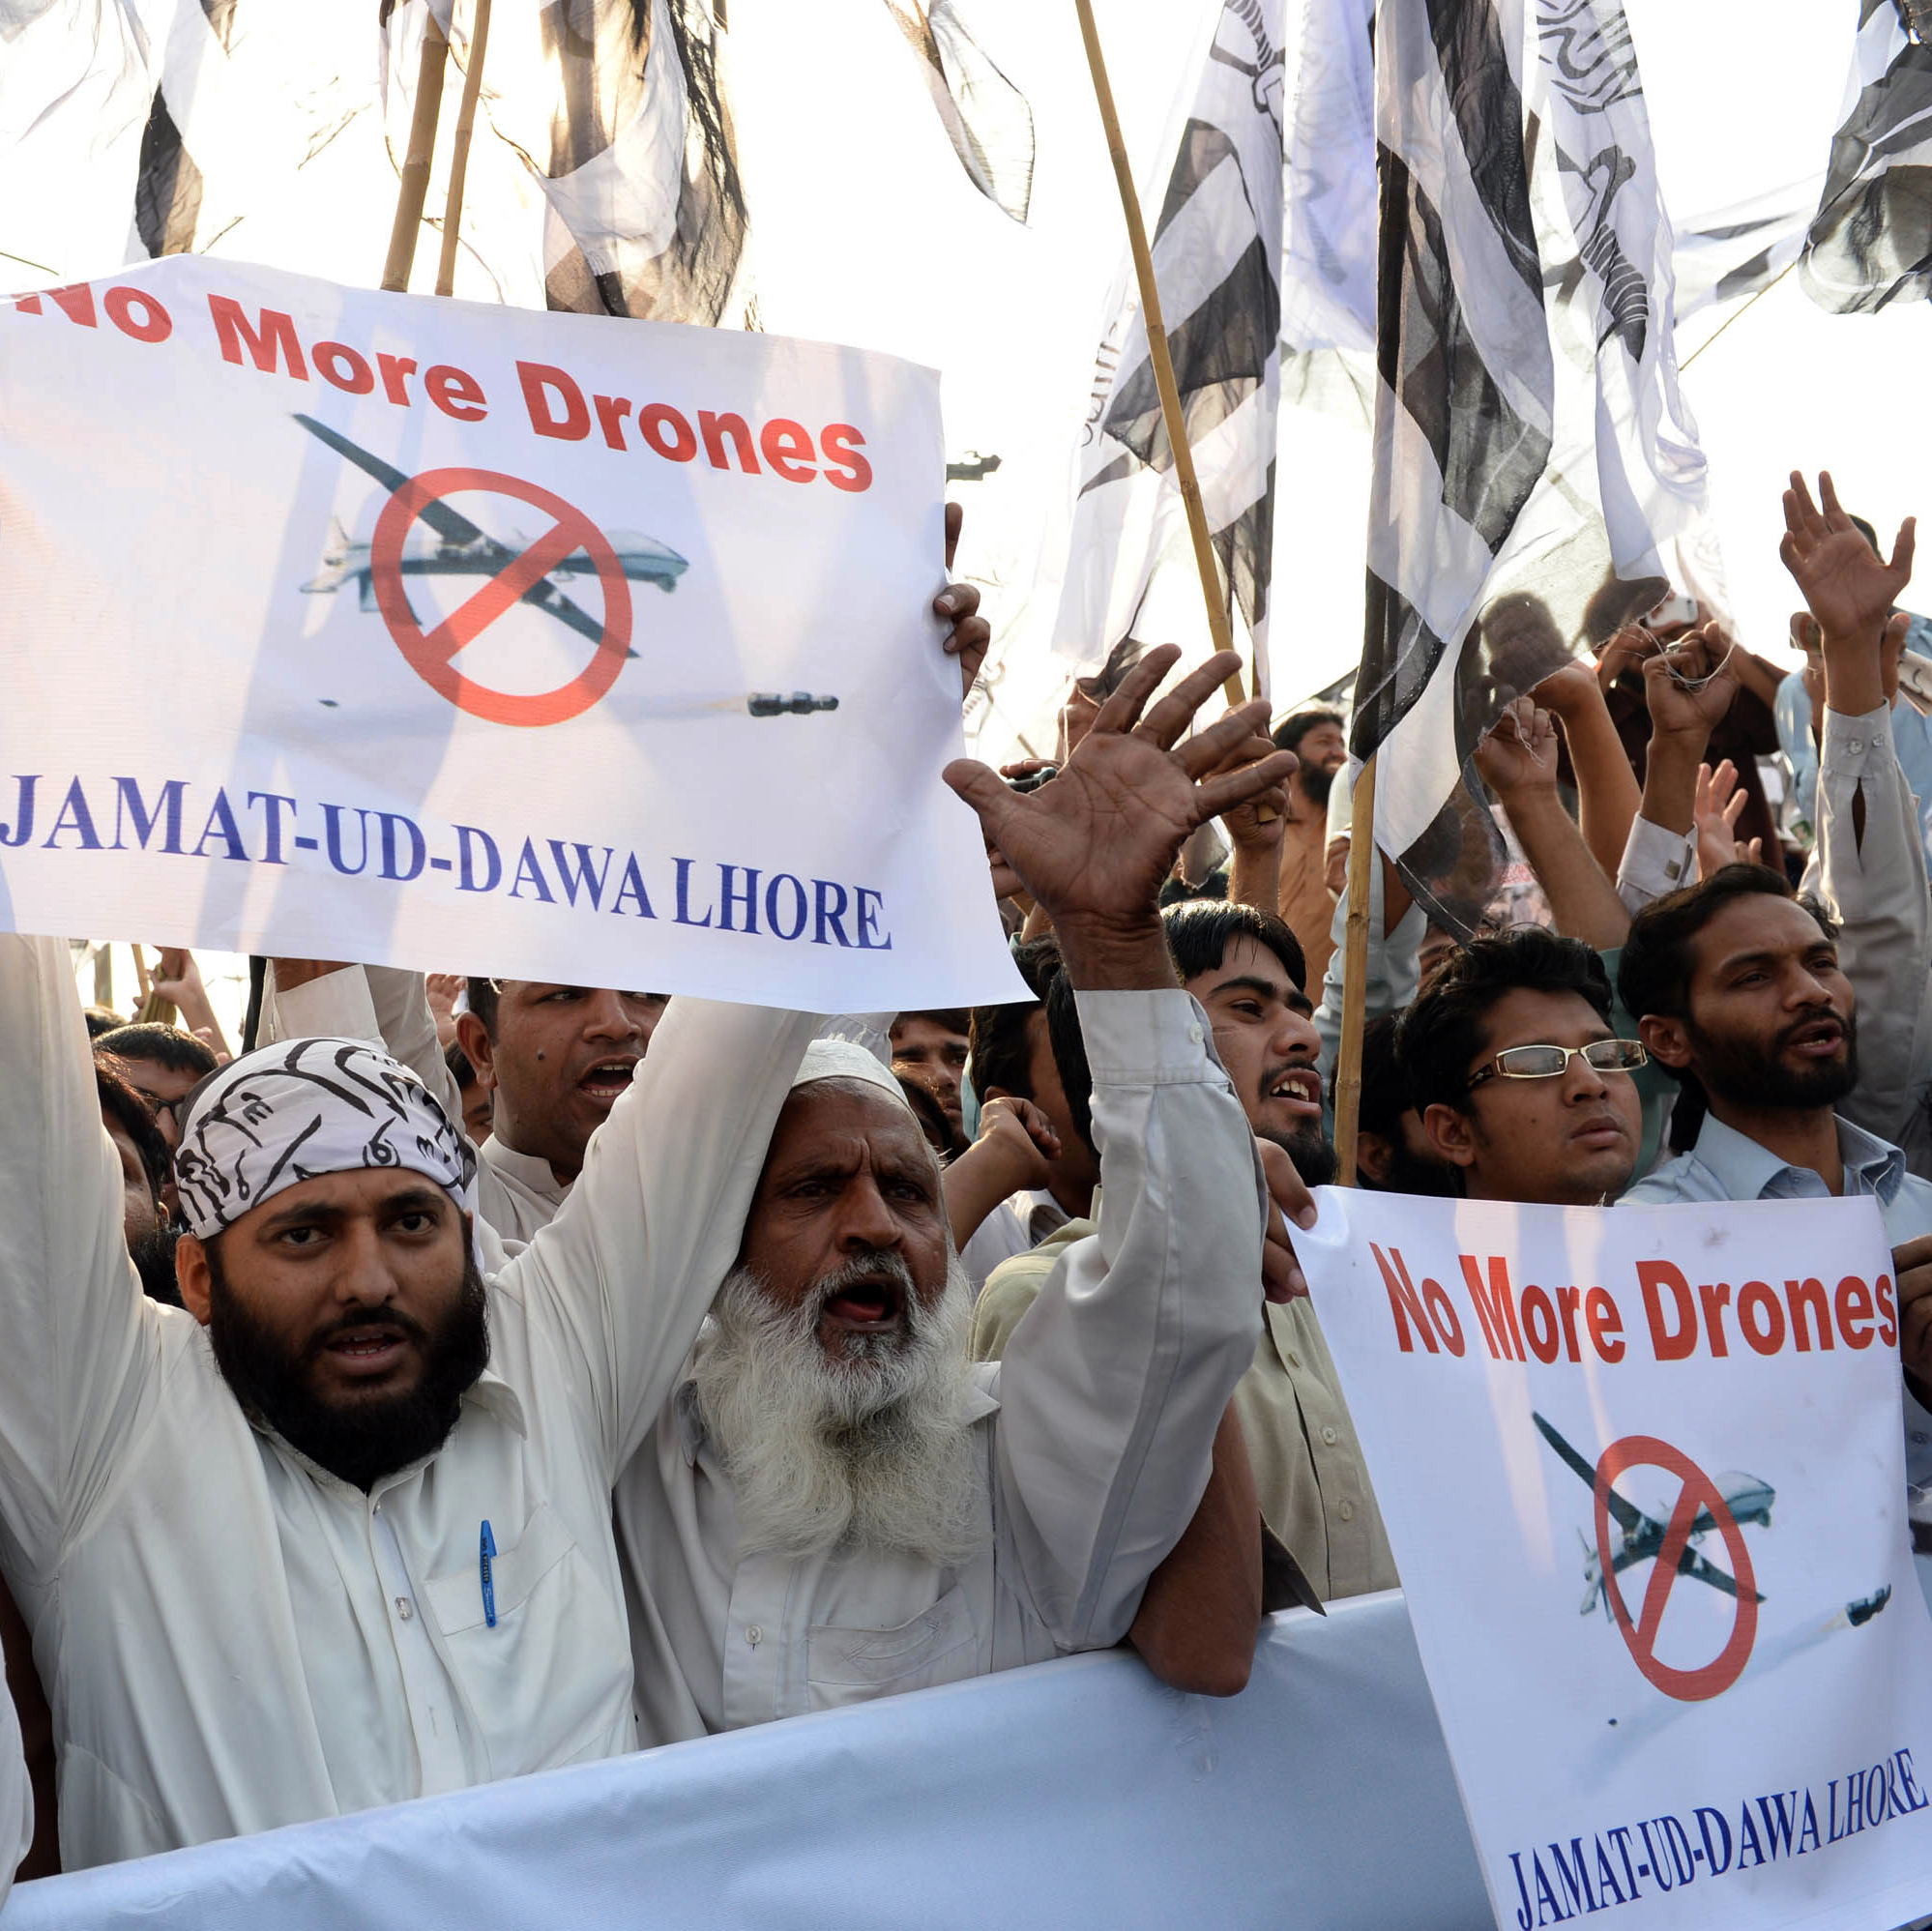 On Nov. 1, Pakistani activists in Lahore protest U.S. drone strikes. The strikes have become less frequent recently, but they remain extremely unpopular in Pakistan.